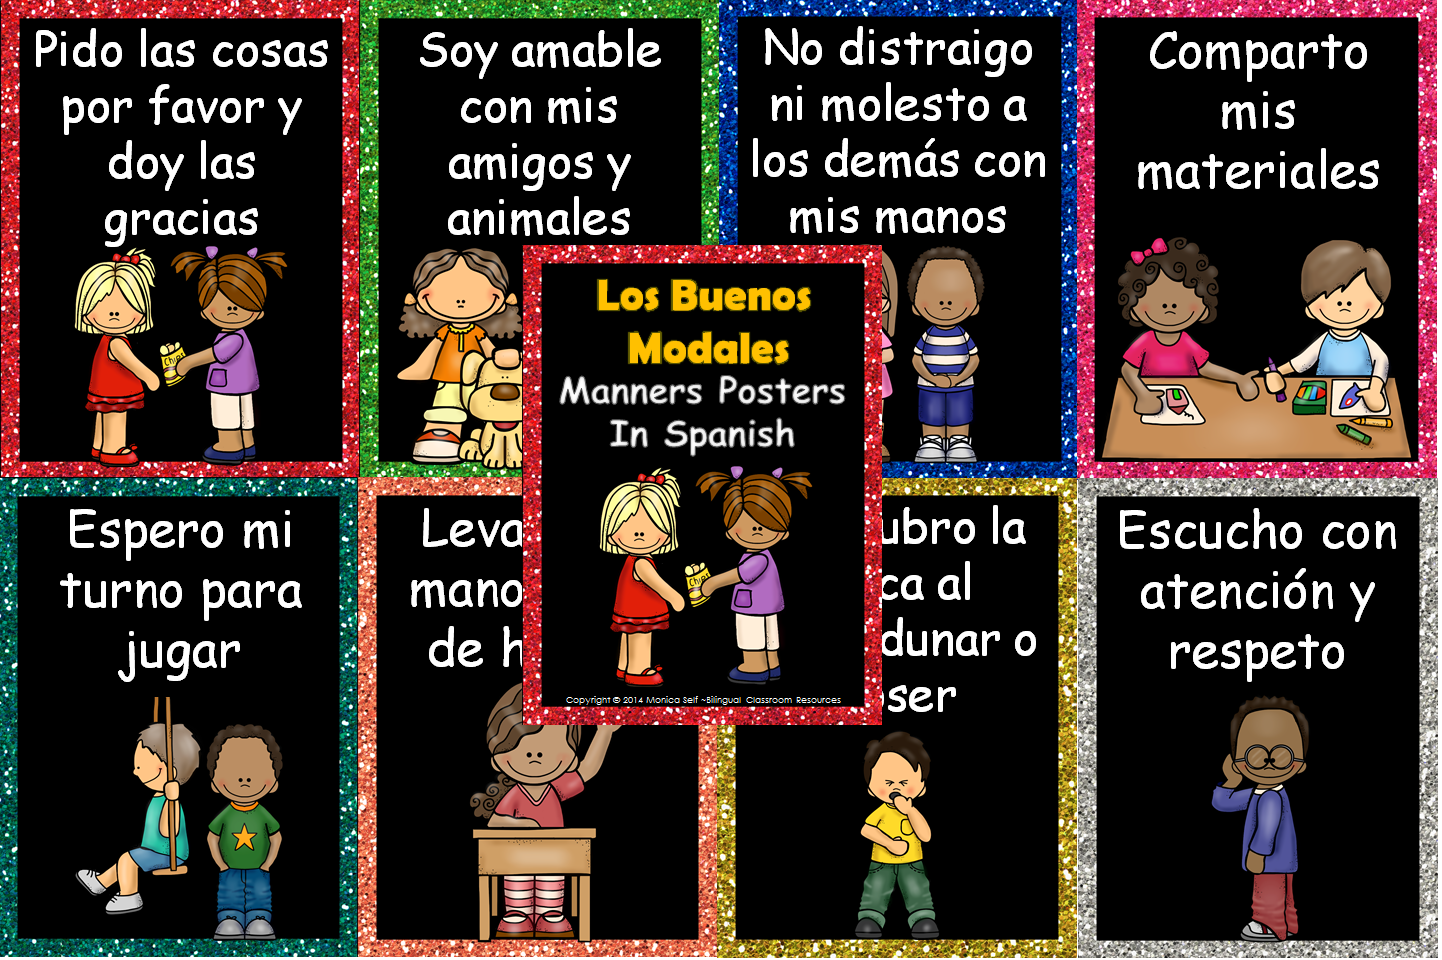 http://www.teacherspayteachers.com/Product/Los-Buenos-Modales-Manners-In-Spanish-1251048